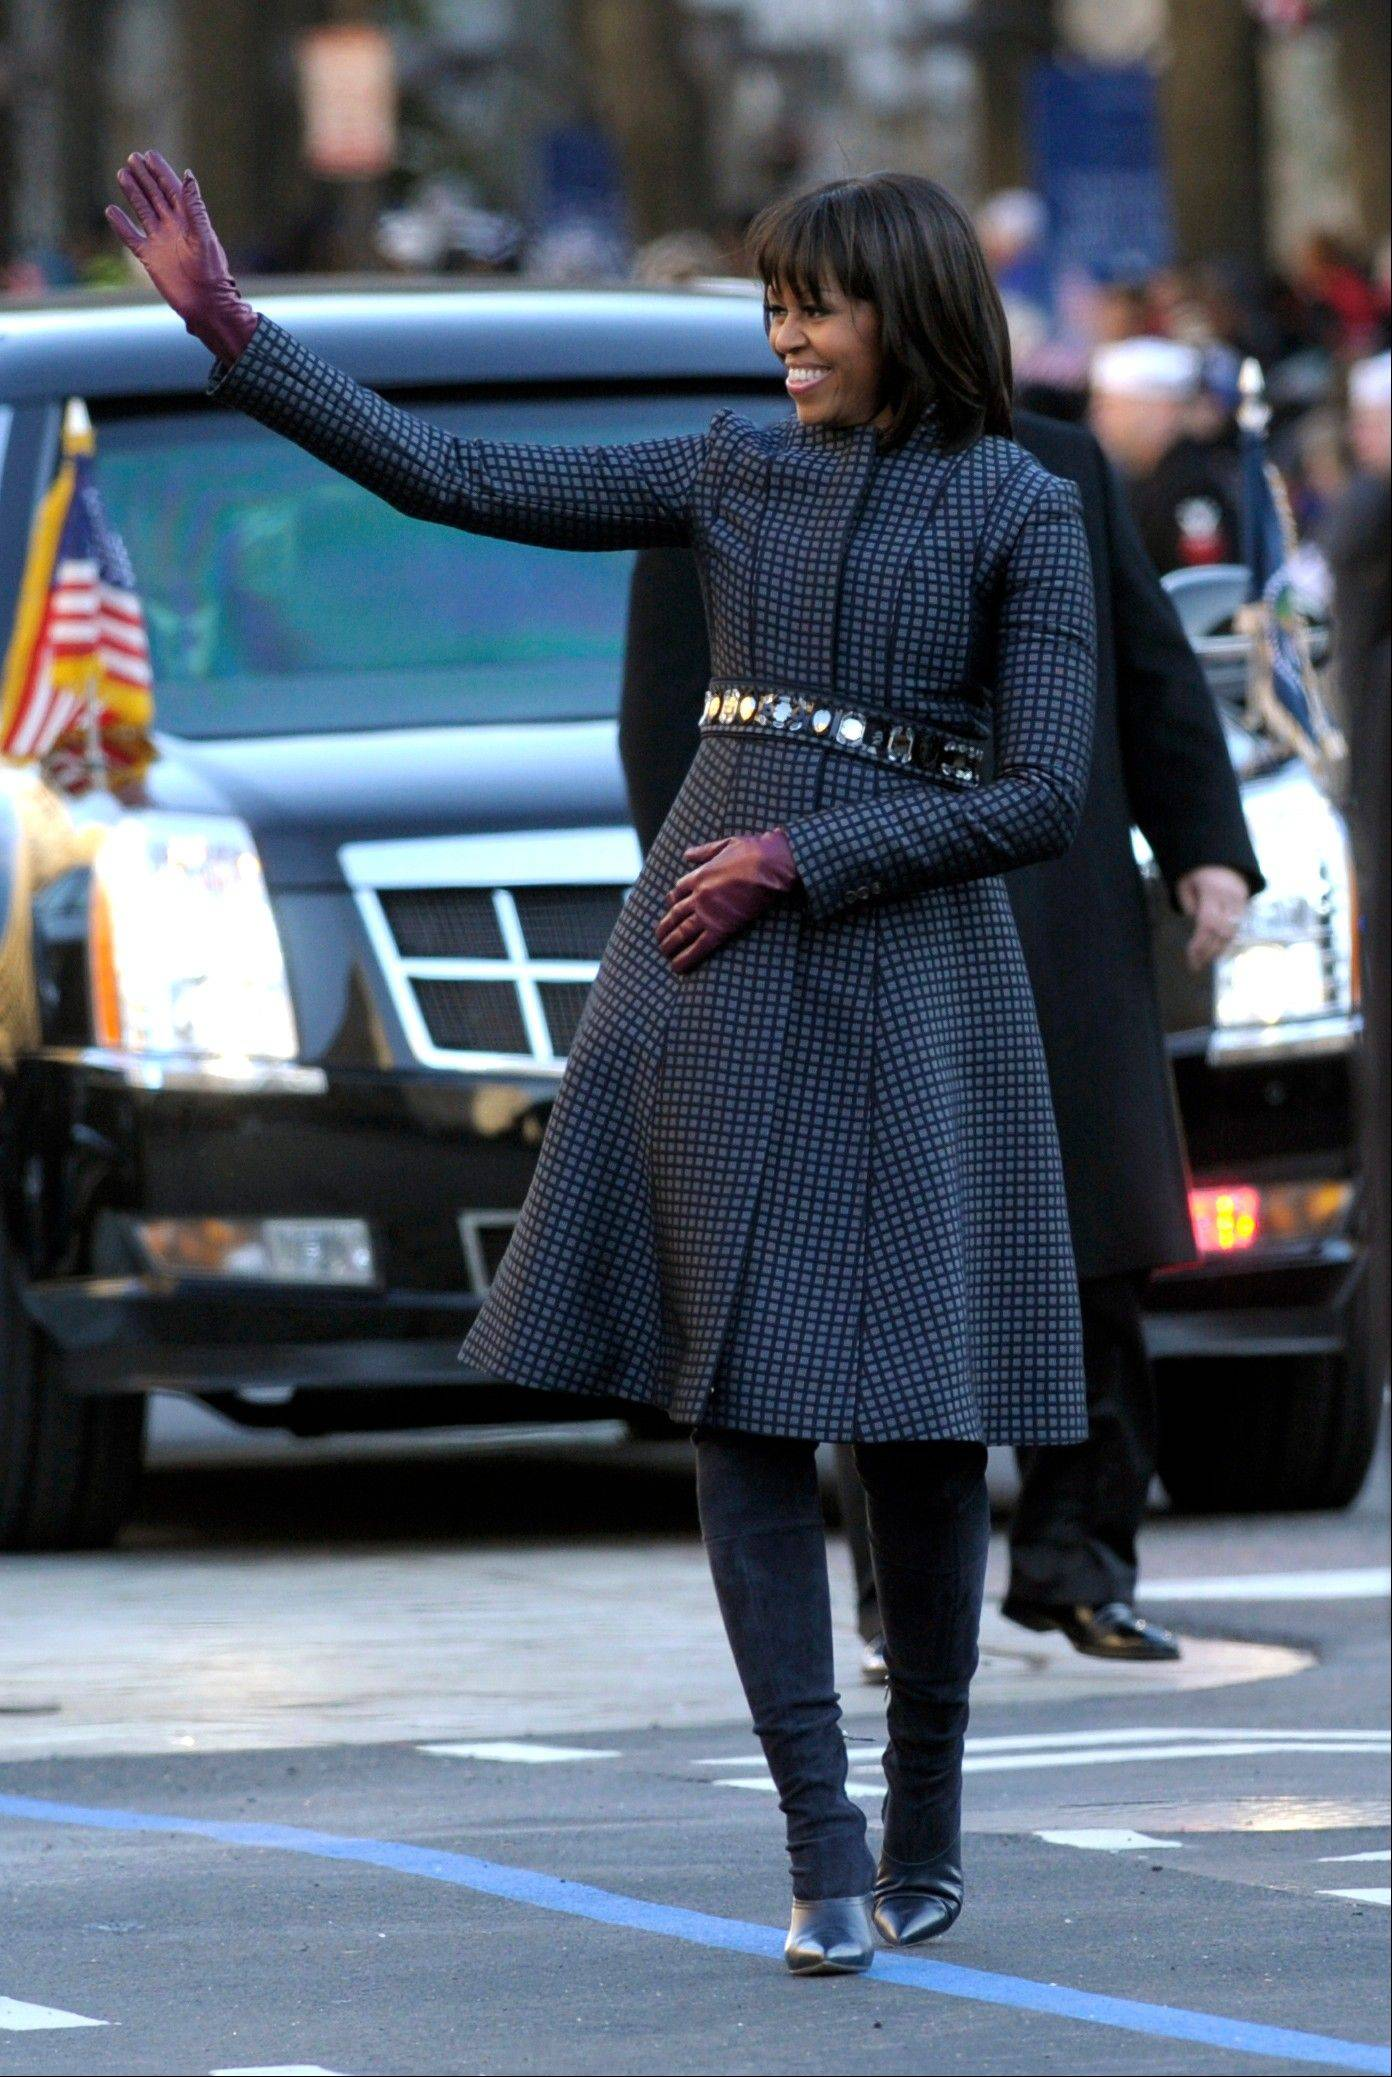 Associated Press file photoFirst lady Michelle Obama waves as she walks in the Inaugural Parade after the ceremonial swearing-in for the 57th Presidential Inauguration on Capitol Hill in Washington.